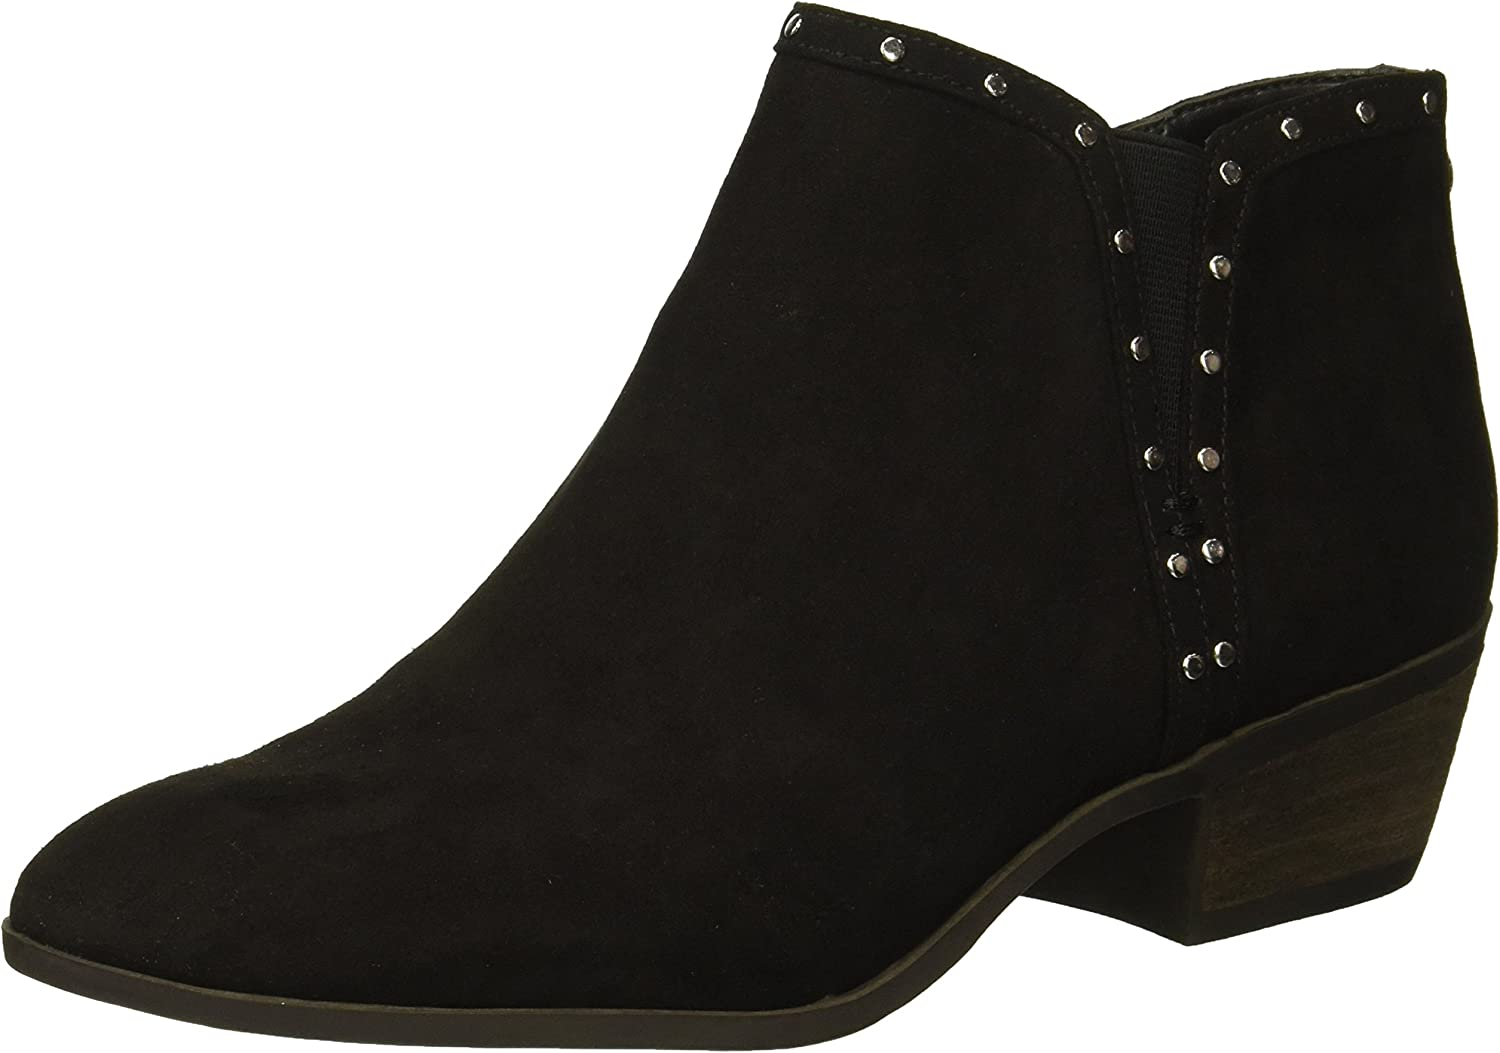 Circus by Sam Edelman Womens Phyllis Ankle Boot